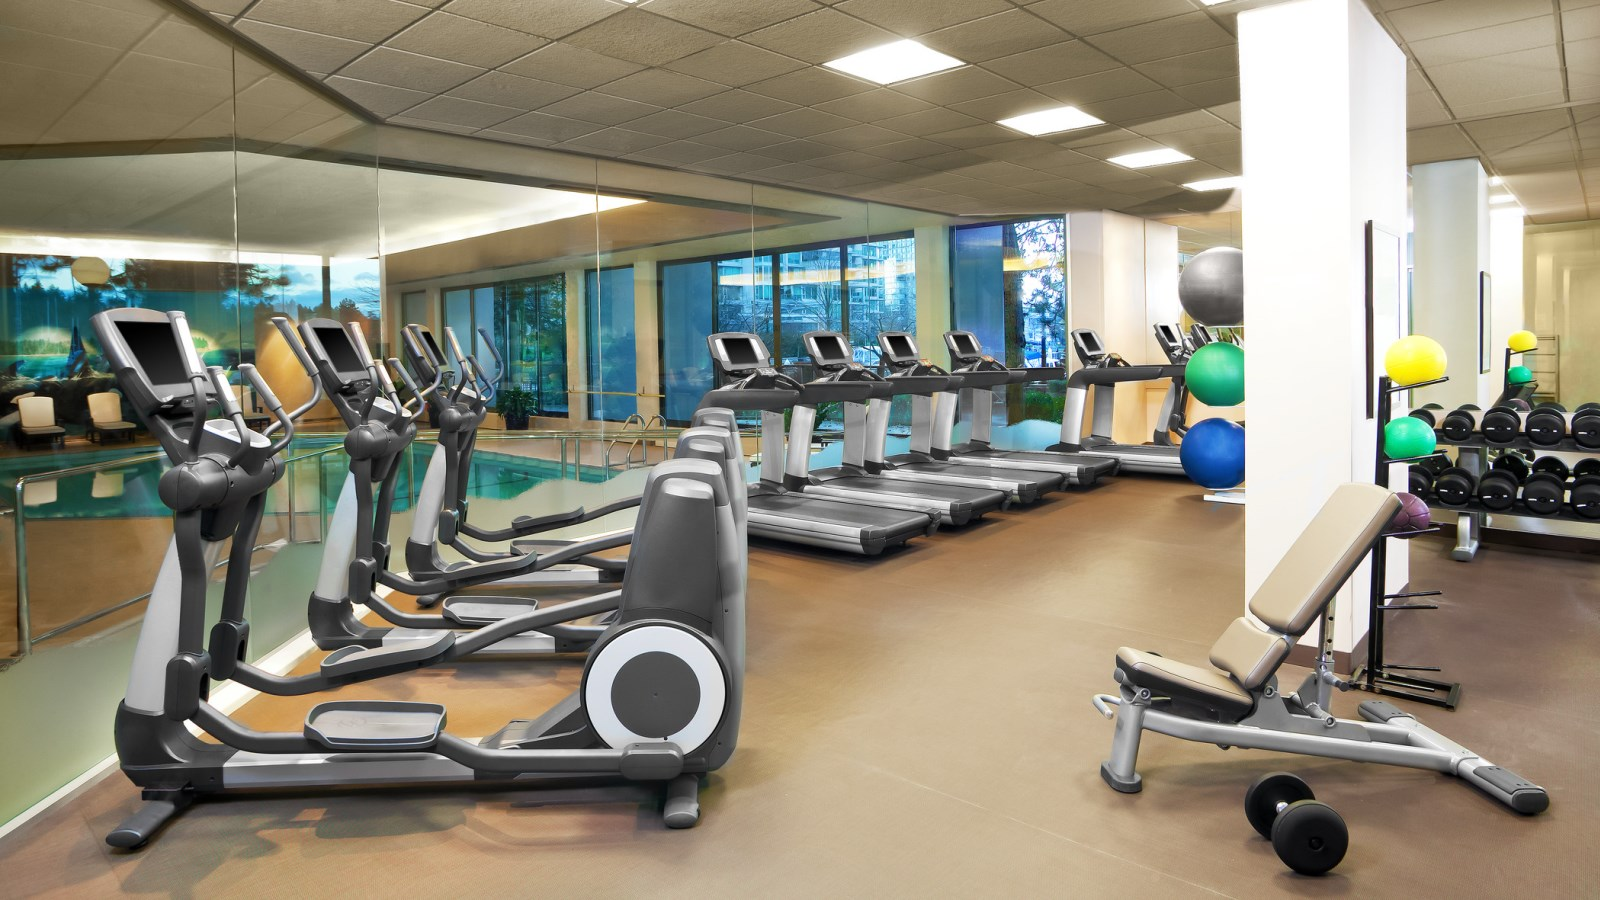 WestinWORKOUT® Fitness Studio - Fitness Centre